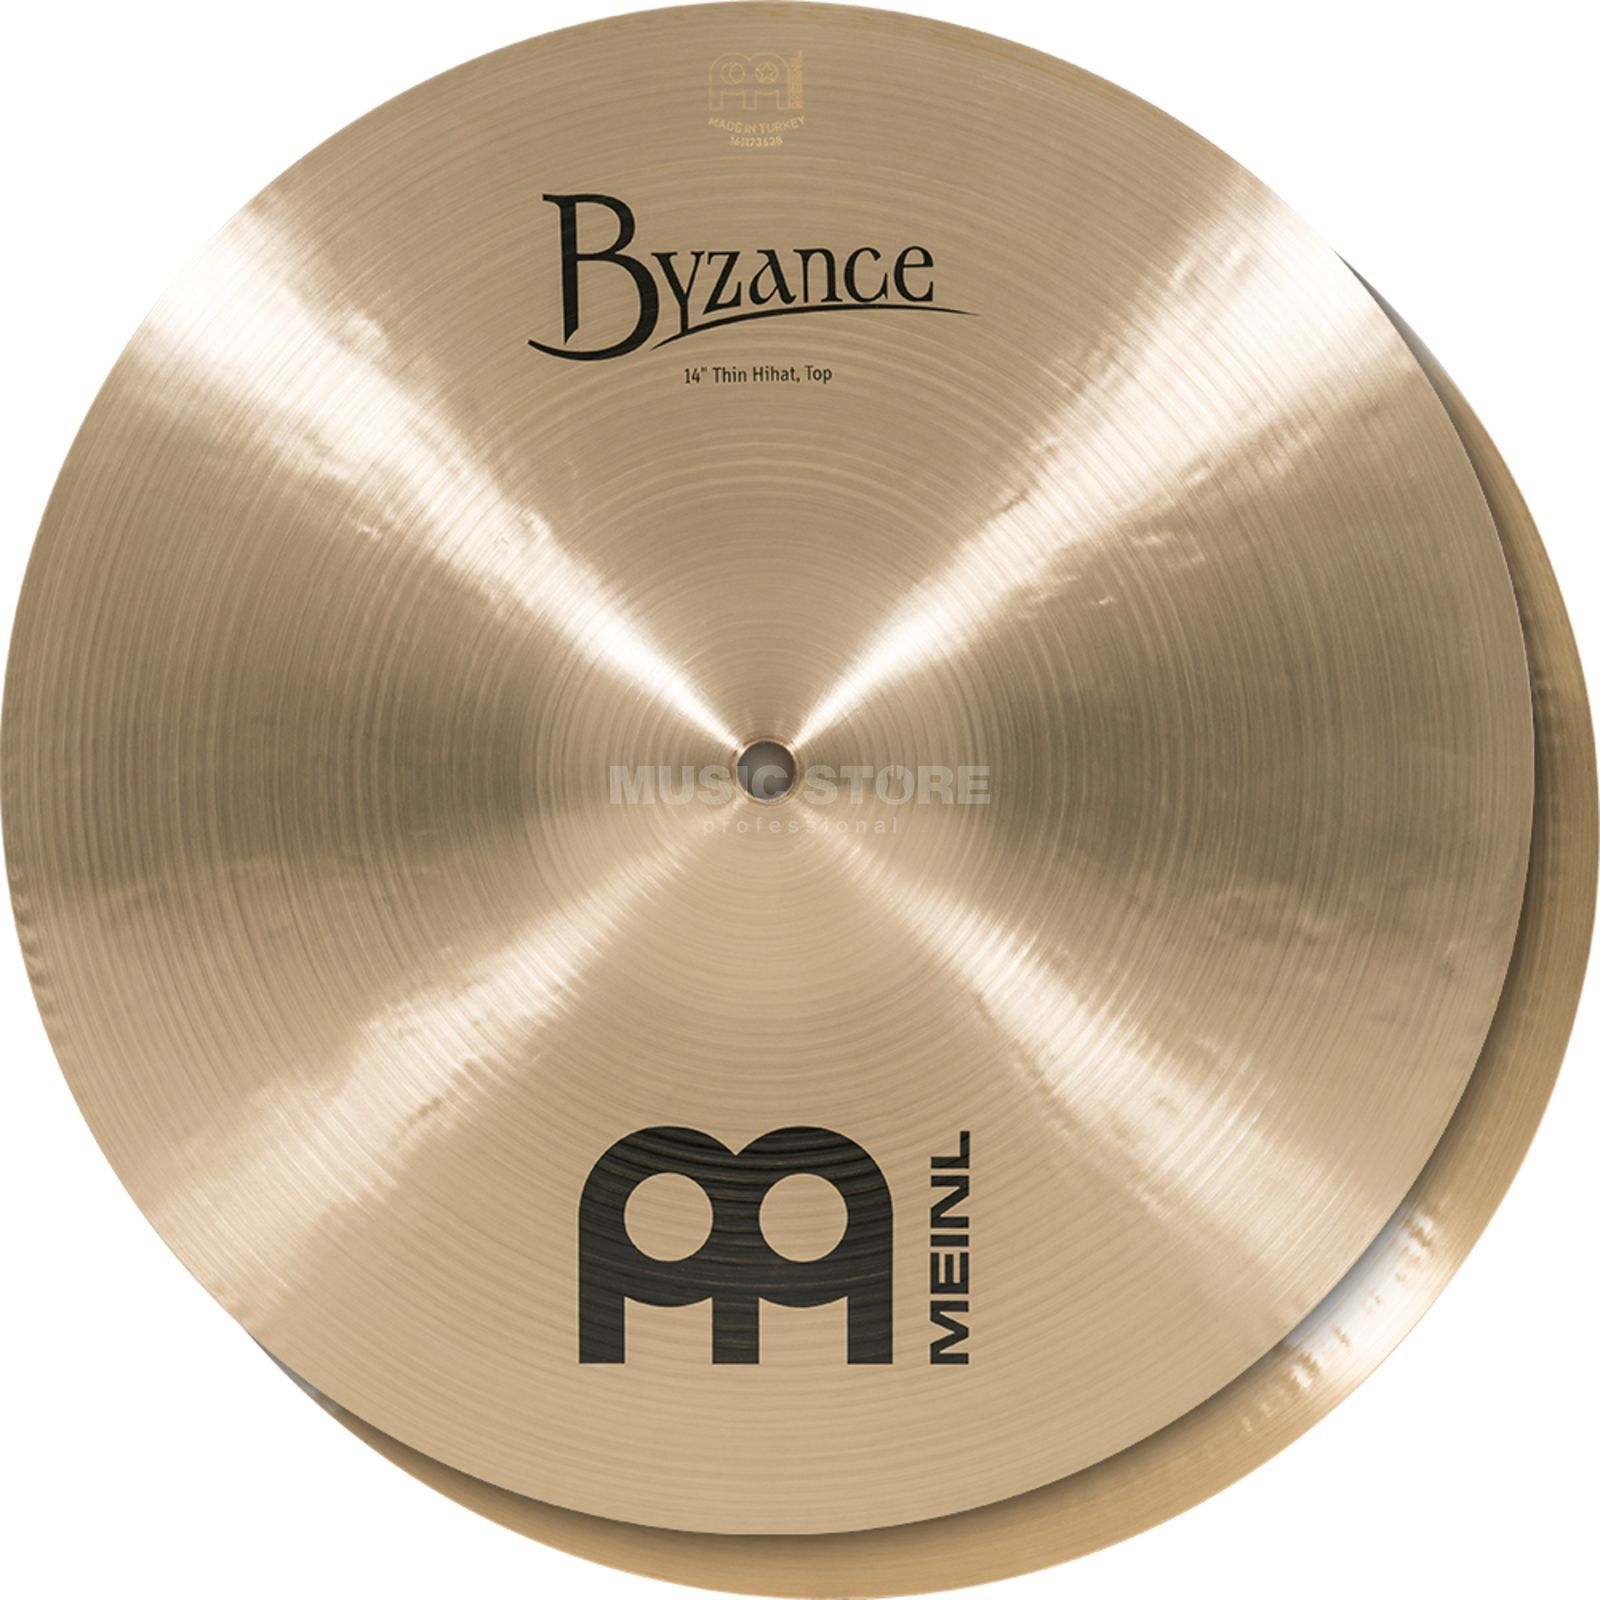 "Meinl Byzance Thin HiHat 14"", B14TH, Traditional Finish Изображение товара"